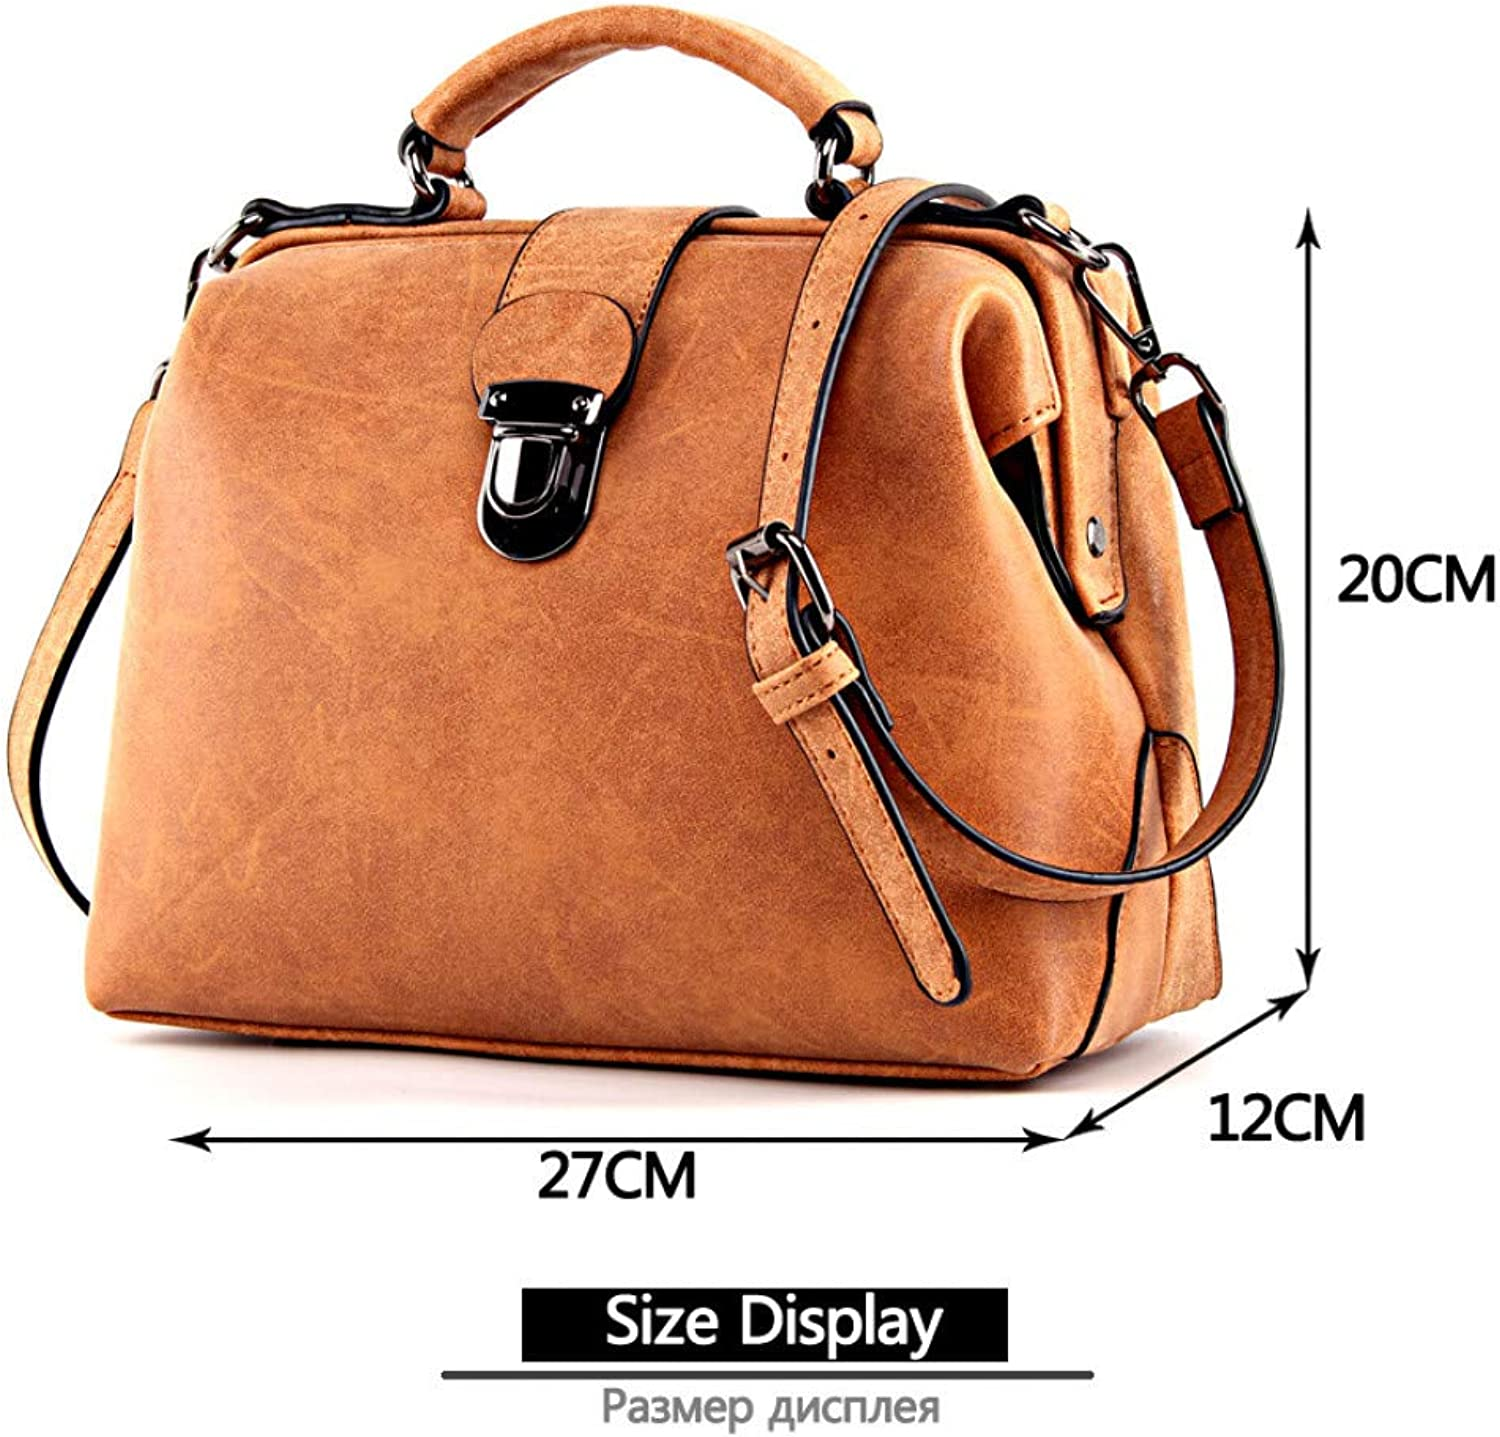 JQSM Handbags Women's Bag Shoulder Female Matte Leather Messenger Bag Women's Crossbody Ladies Hand Bags for Women